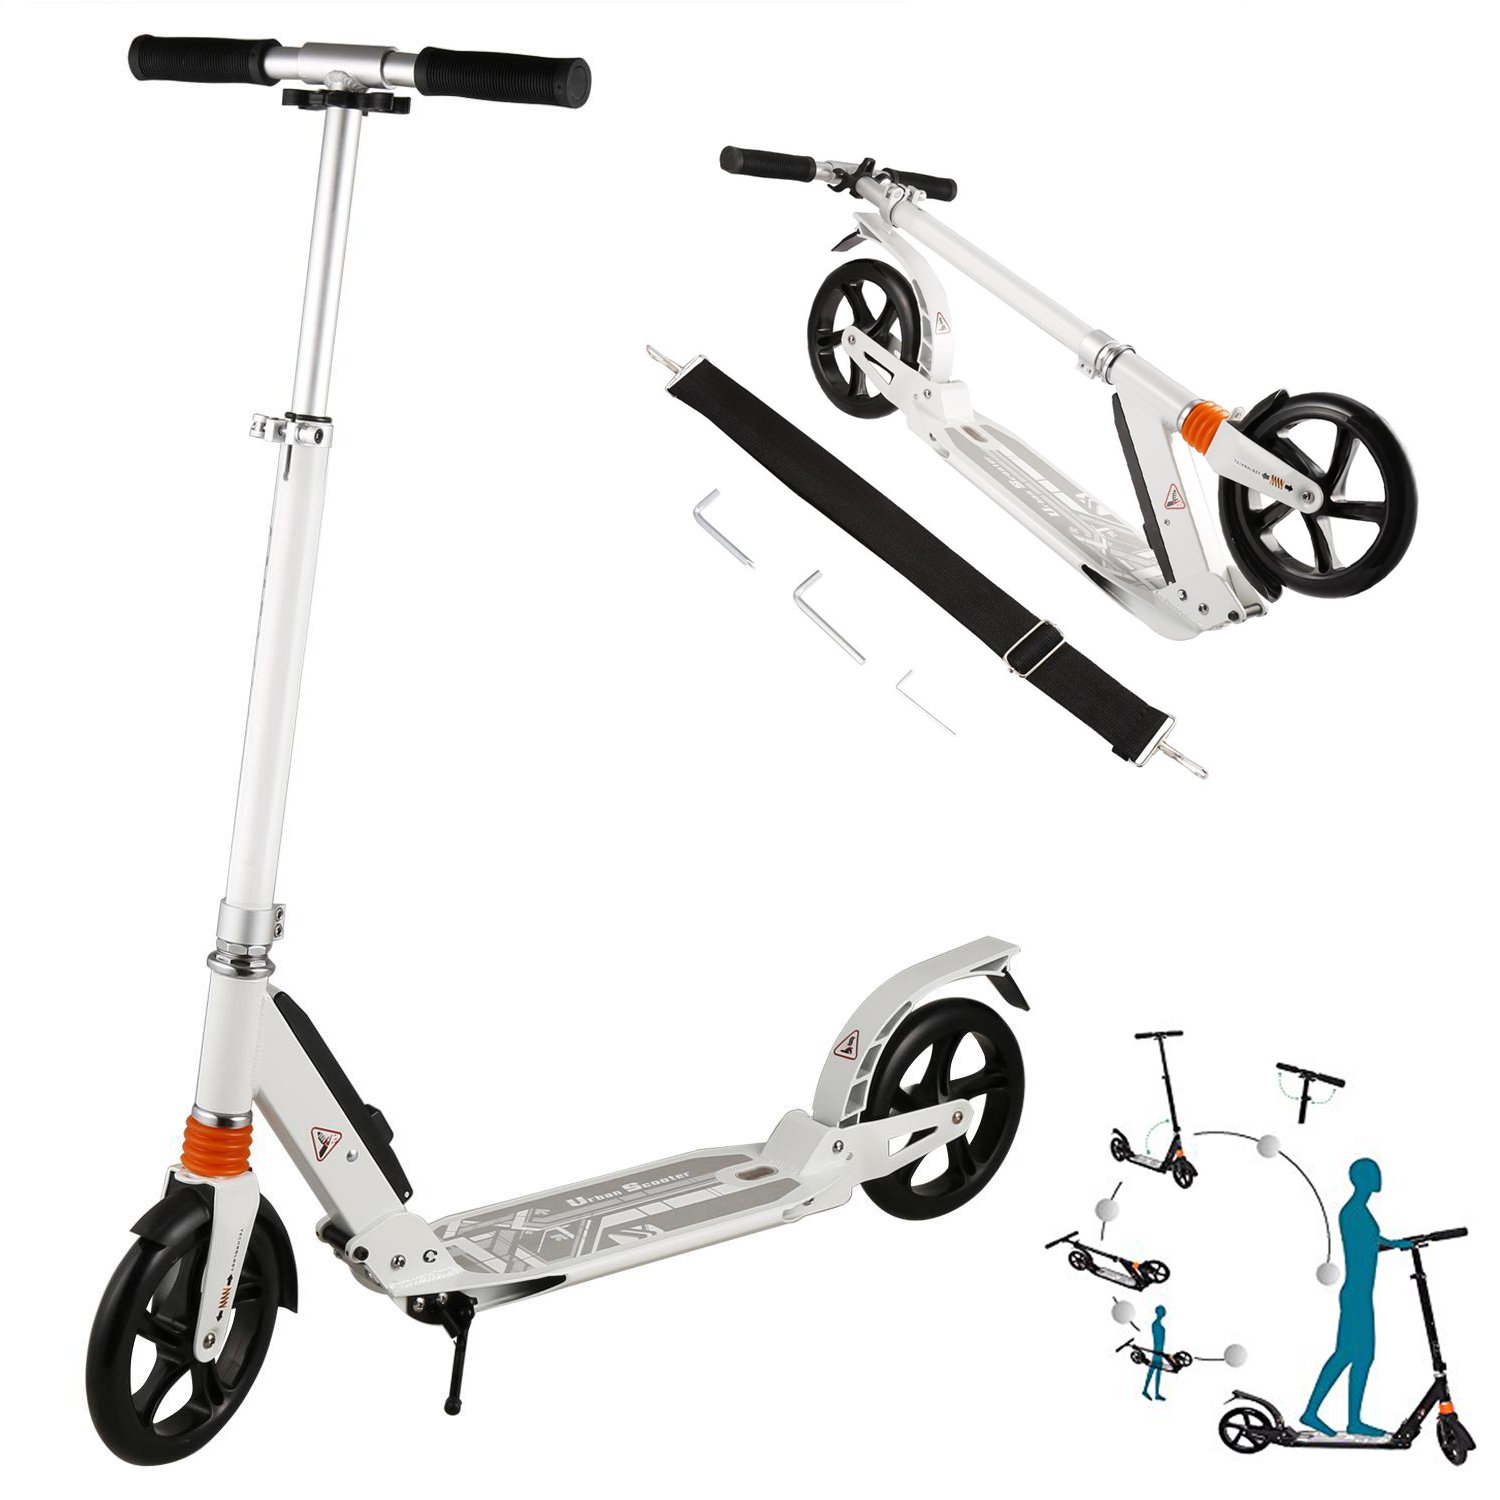 Etuoji Aluminum Portable Folding Kick Scooter with Dual Suspension, 2 Big Wheels 3 Levels Adjustable Height Commuter Street Push Scooter for City Urban Riders US STOCK